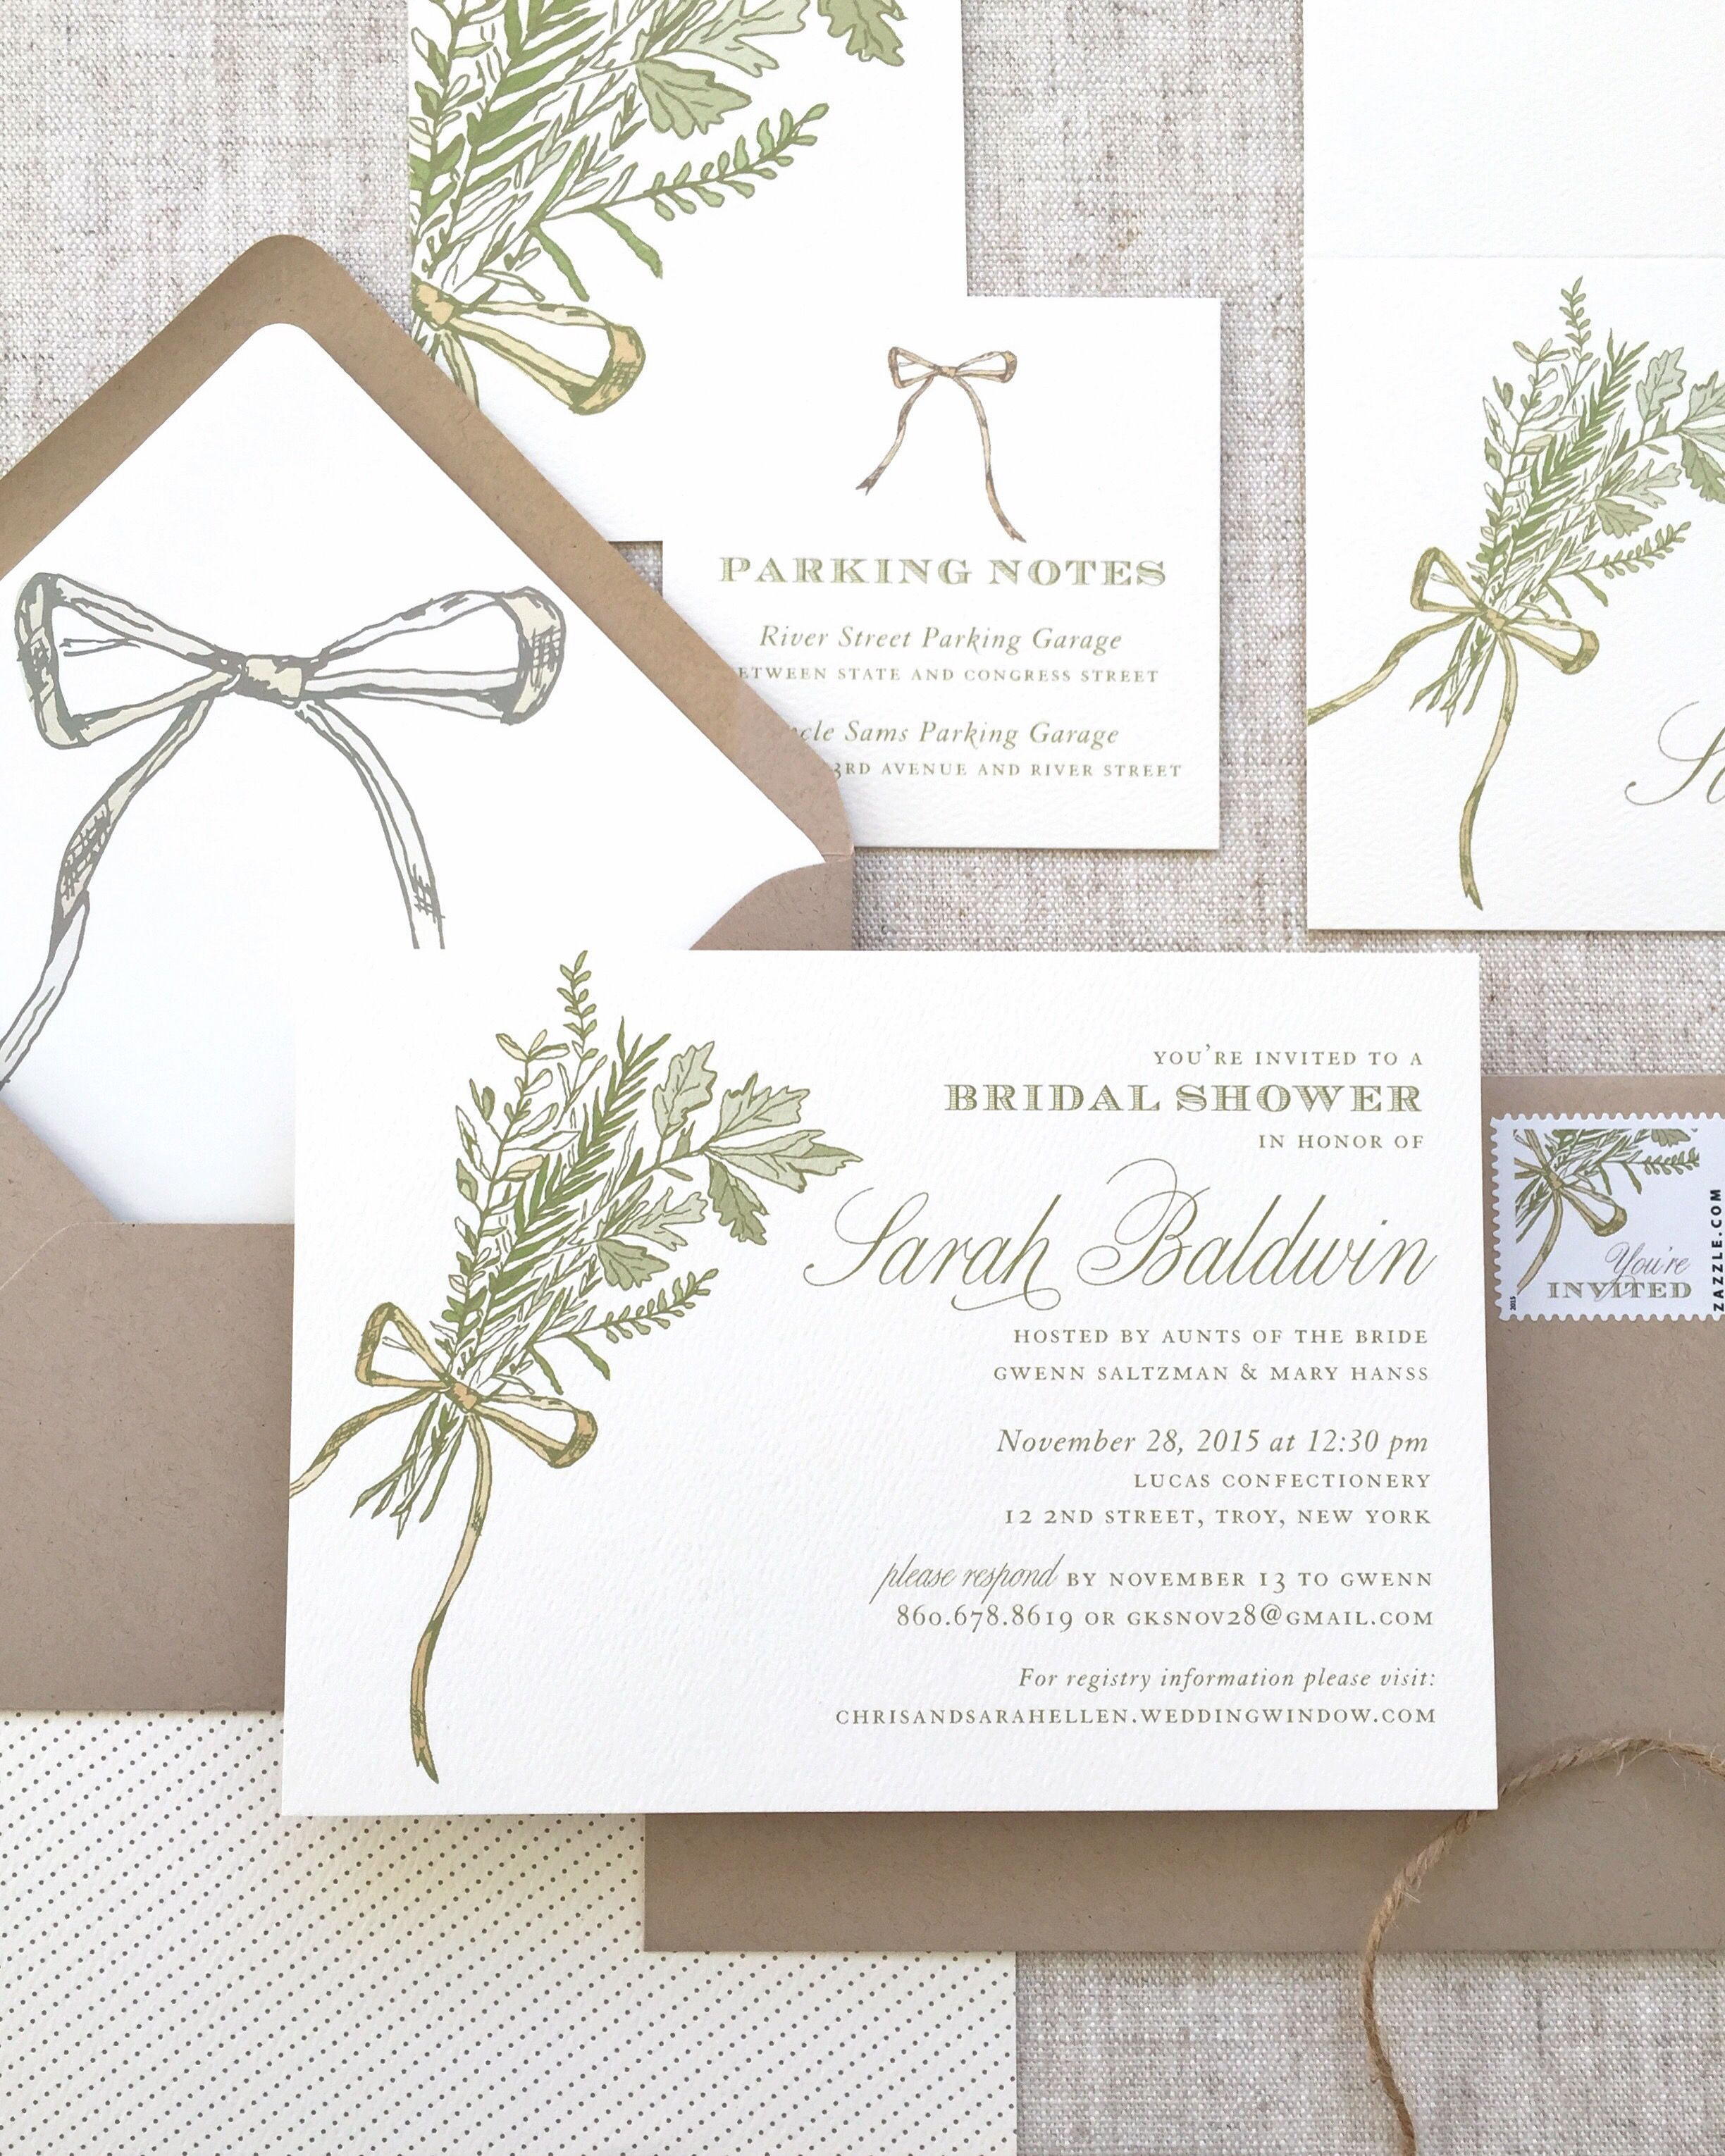 Herb Theme Invitation Herb Theme Bridal Shower Herb Illustration